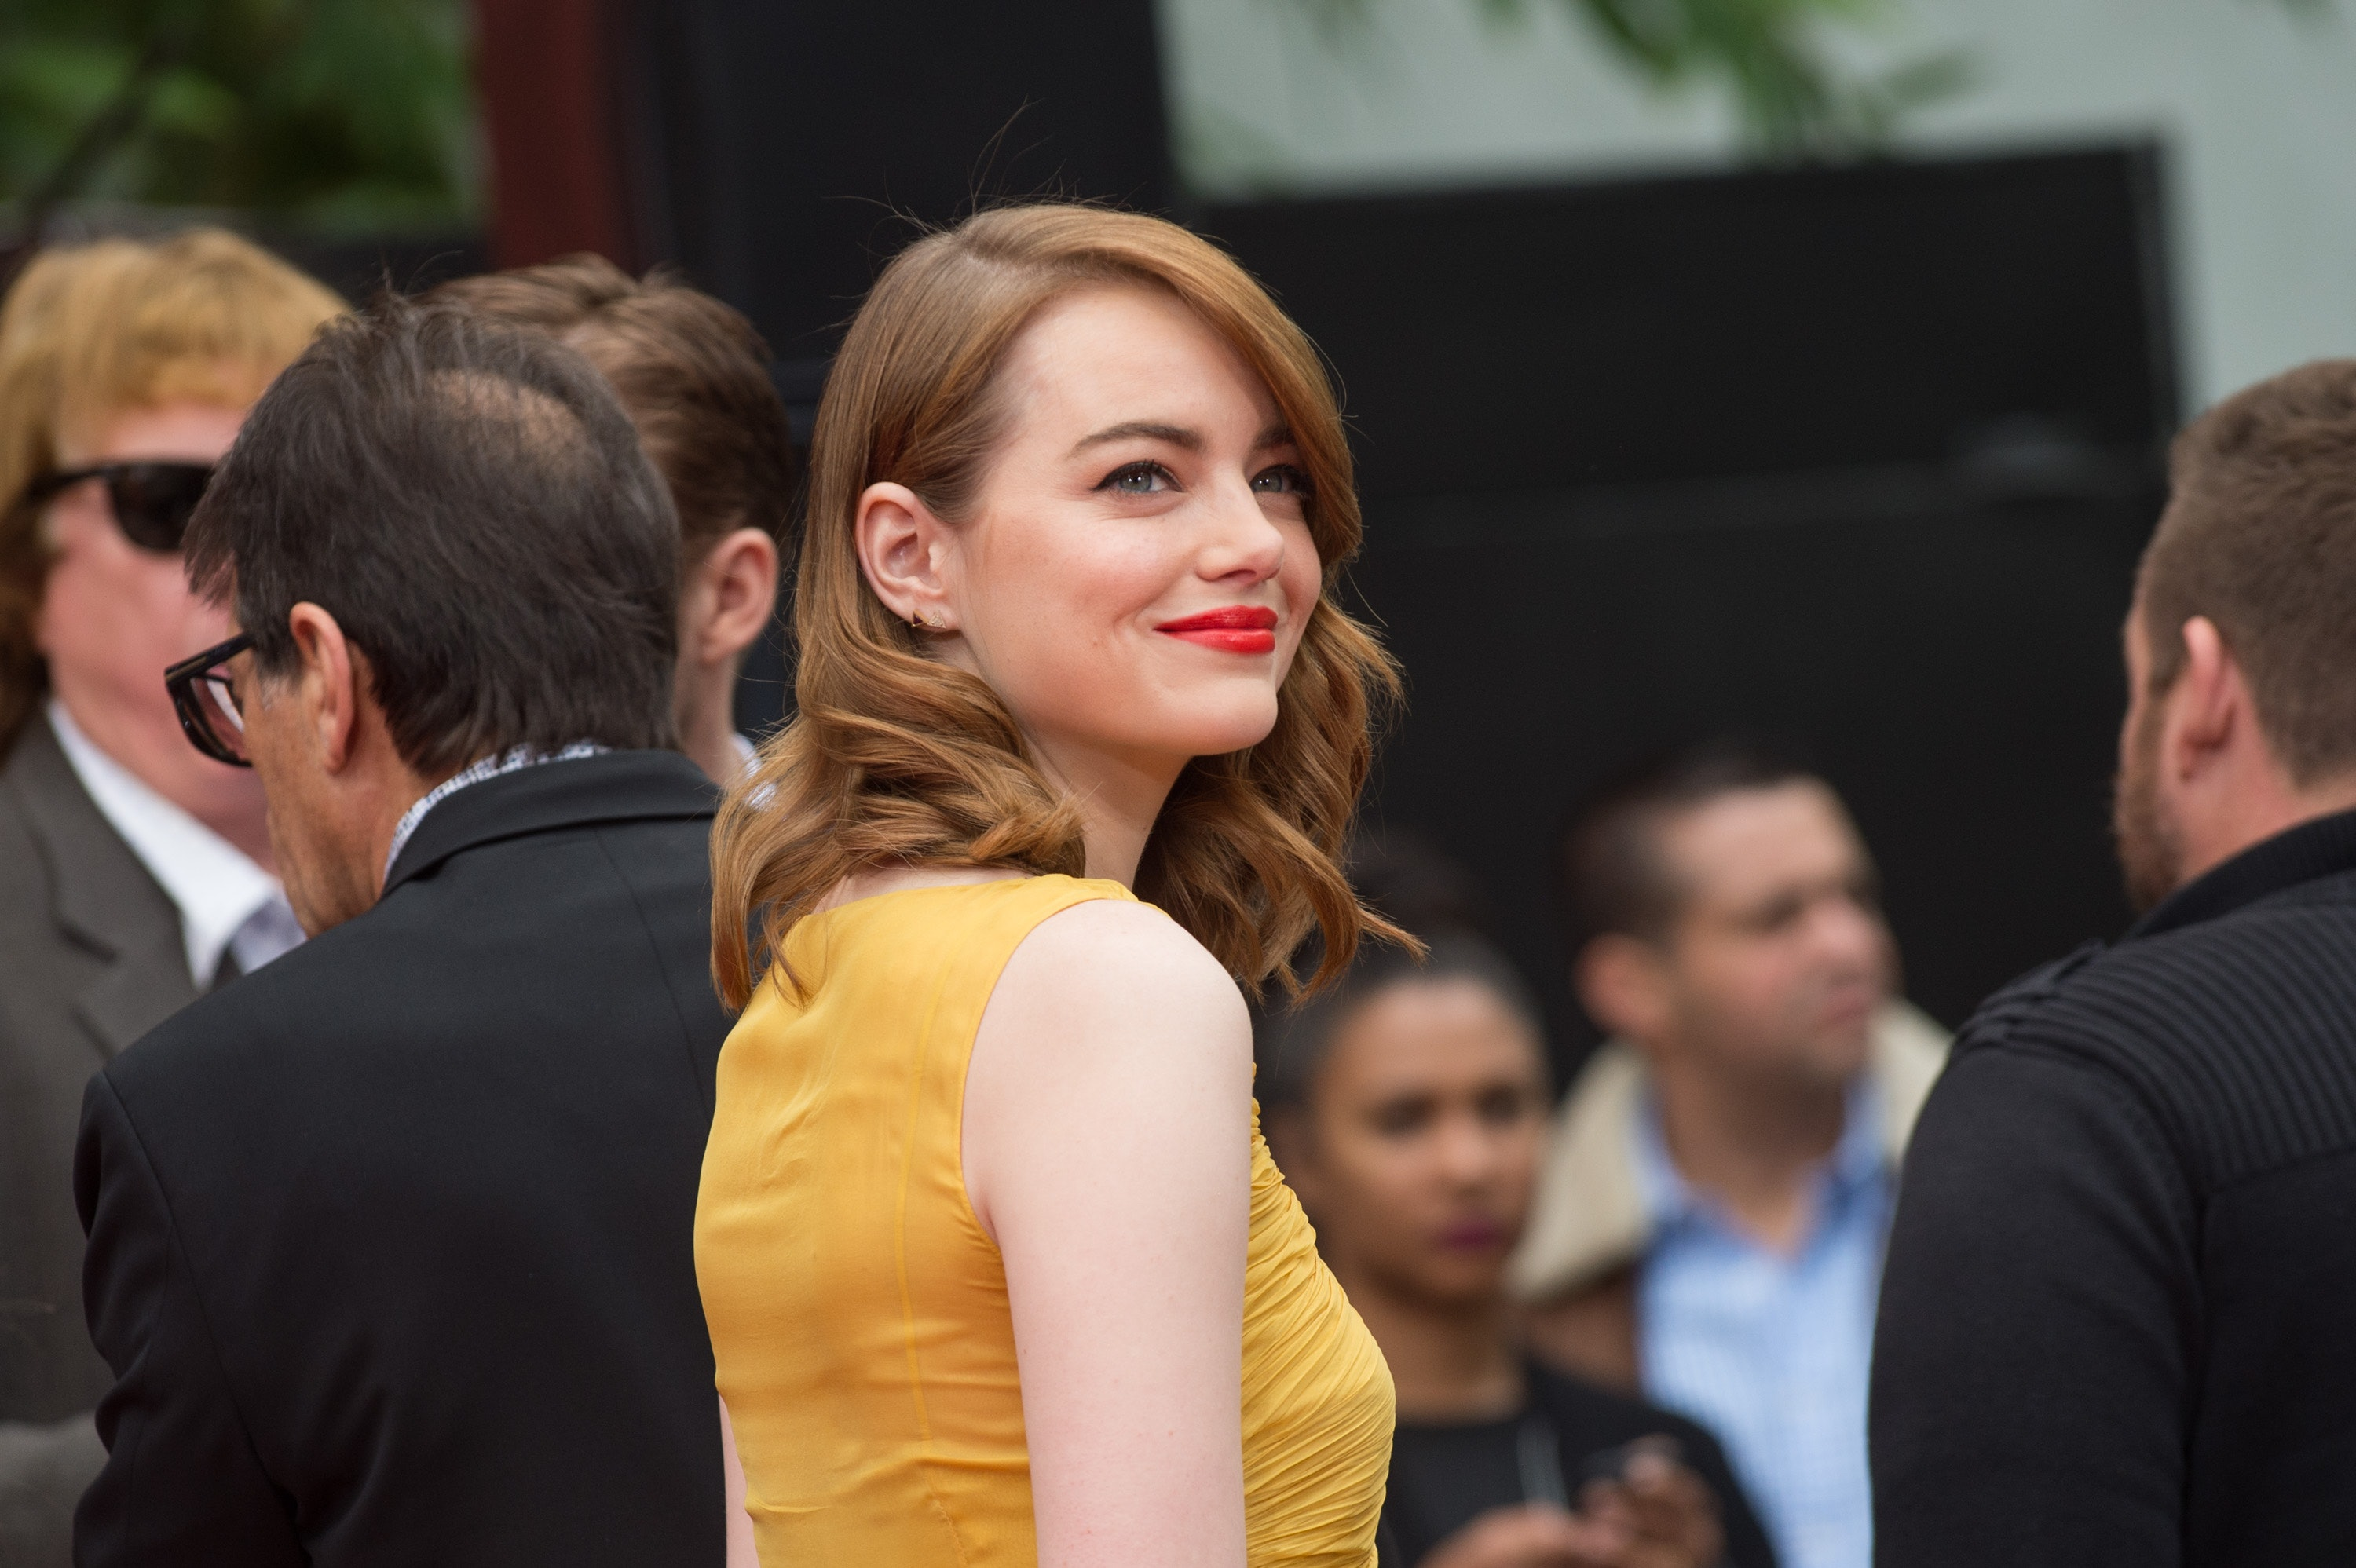 Emma Stone Says Her Improvised Jokes Were Given To Her Male Co-Stars